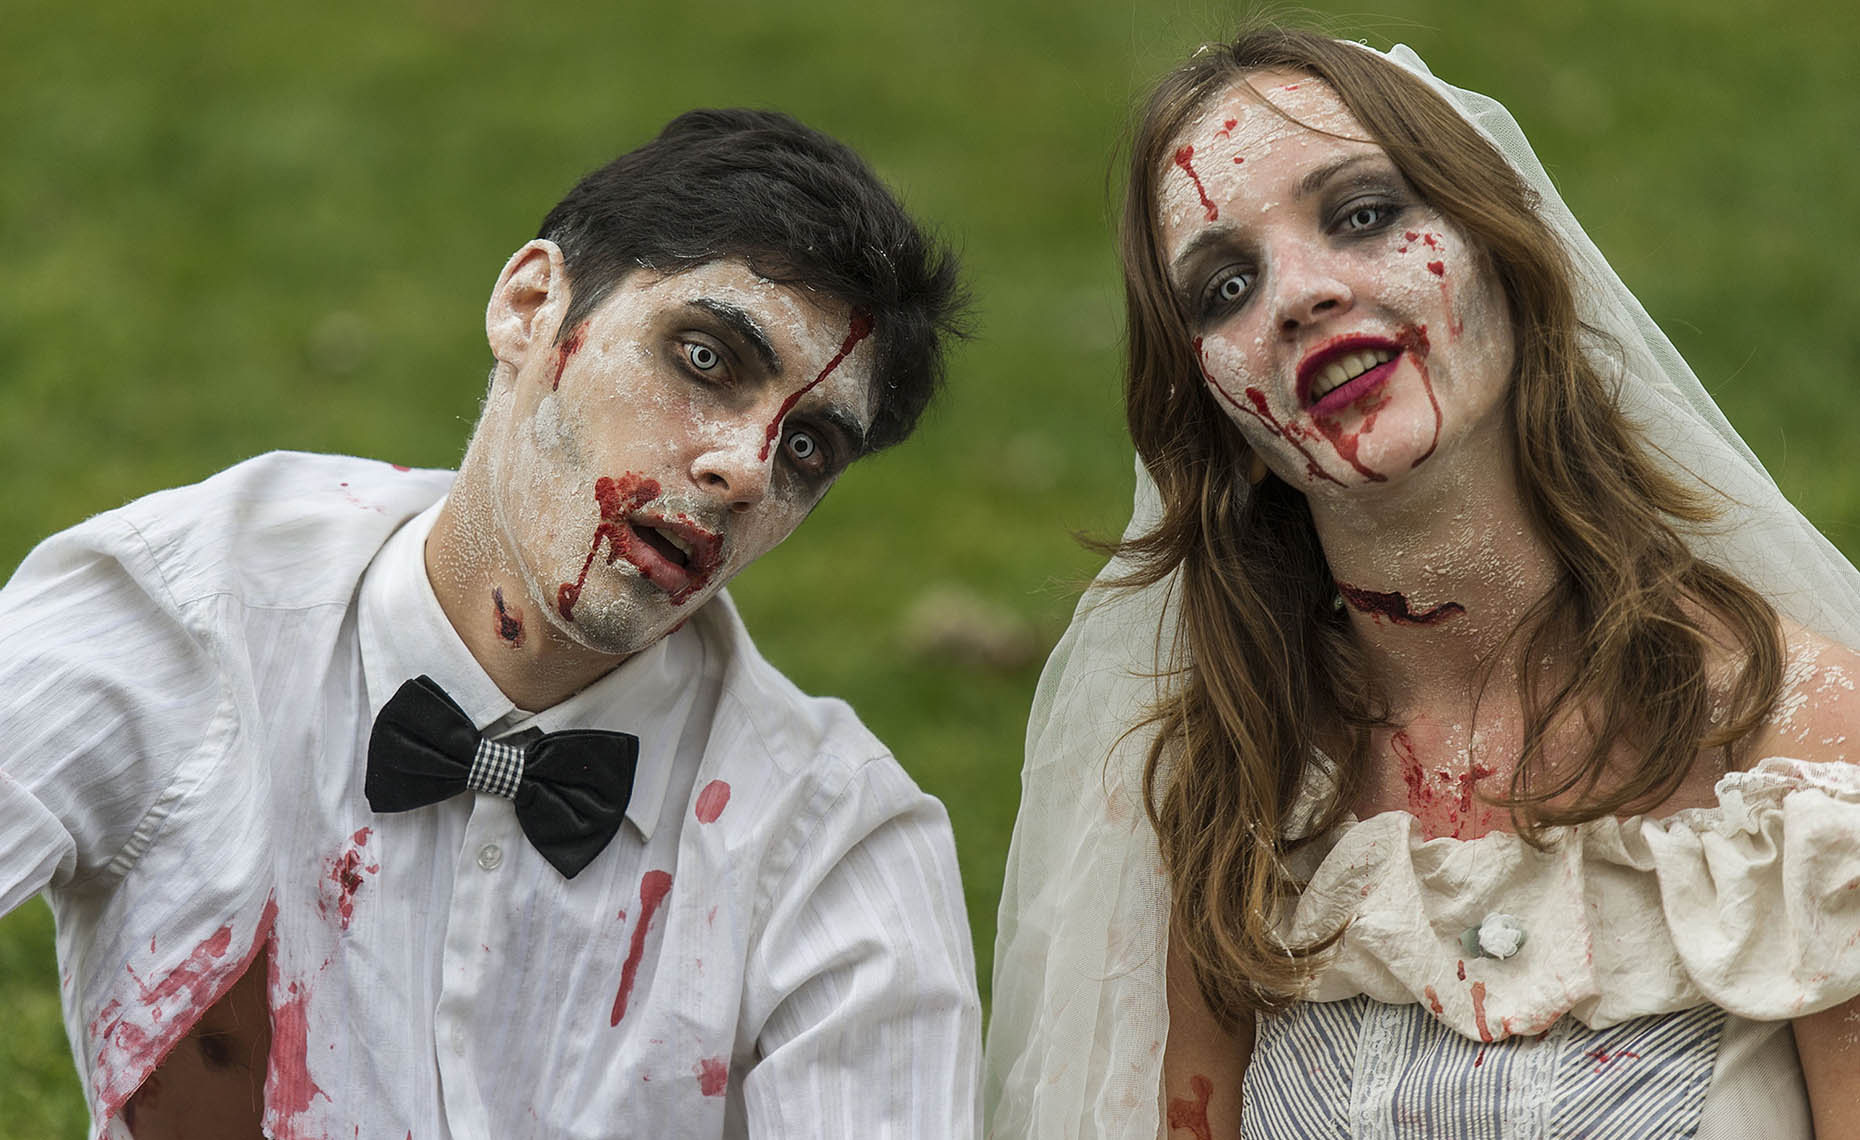 FEA_PhotoReporters_zombie-walk_Montreal_Canada_002